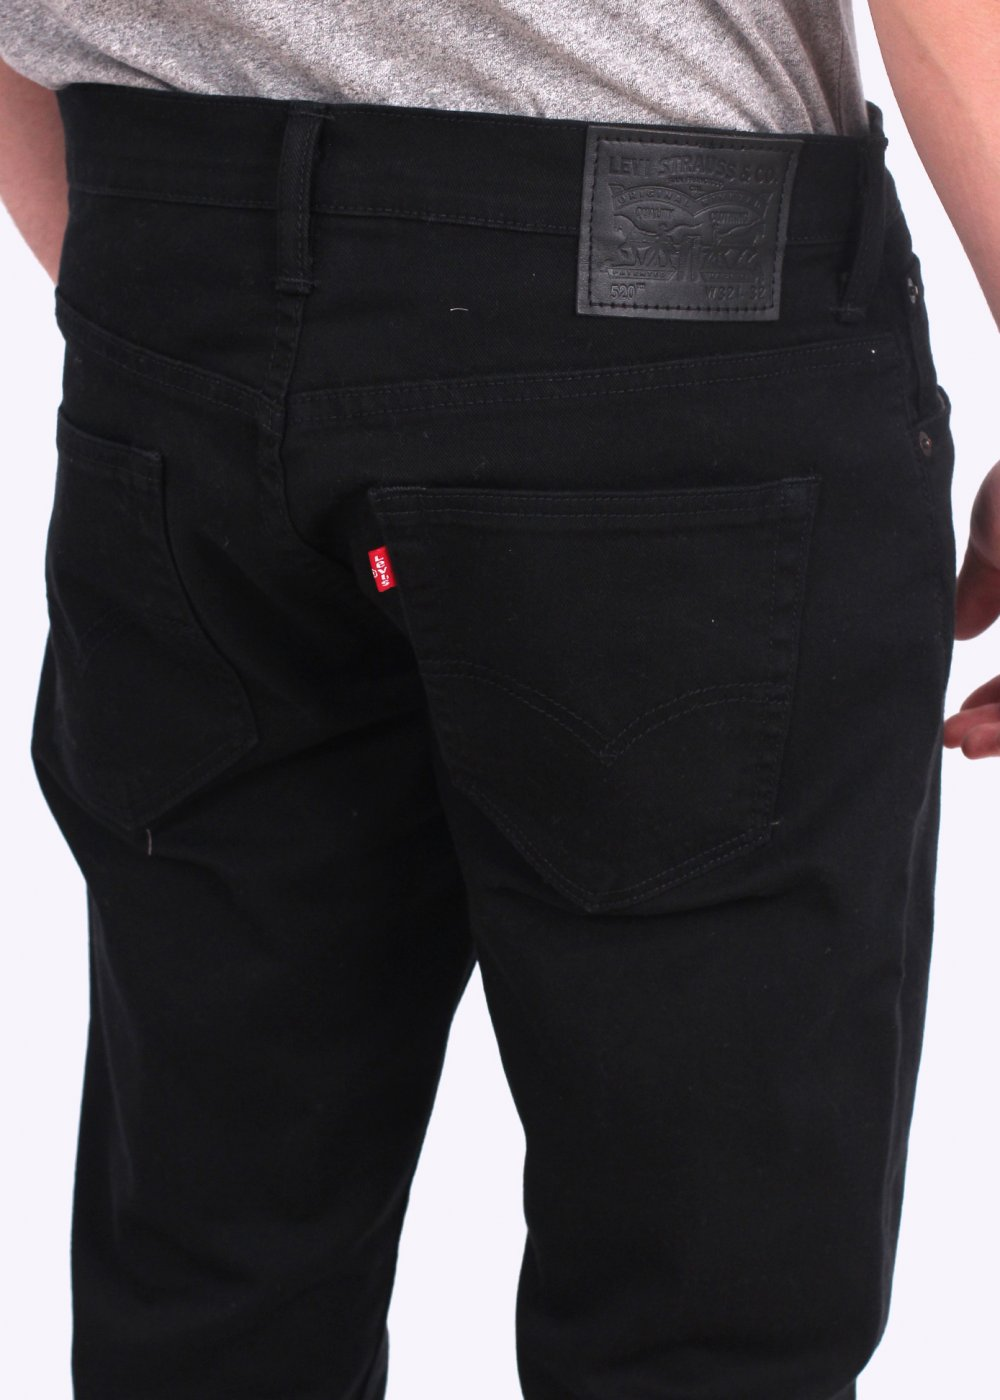 levis 520 extreme tapered jeans jet black